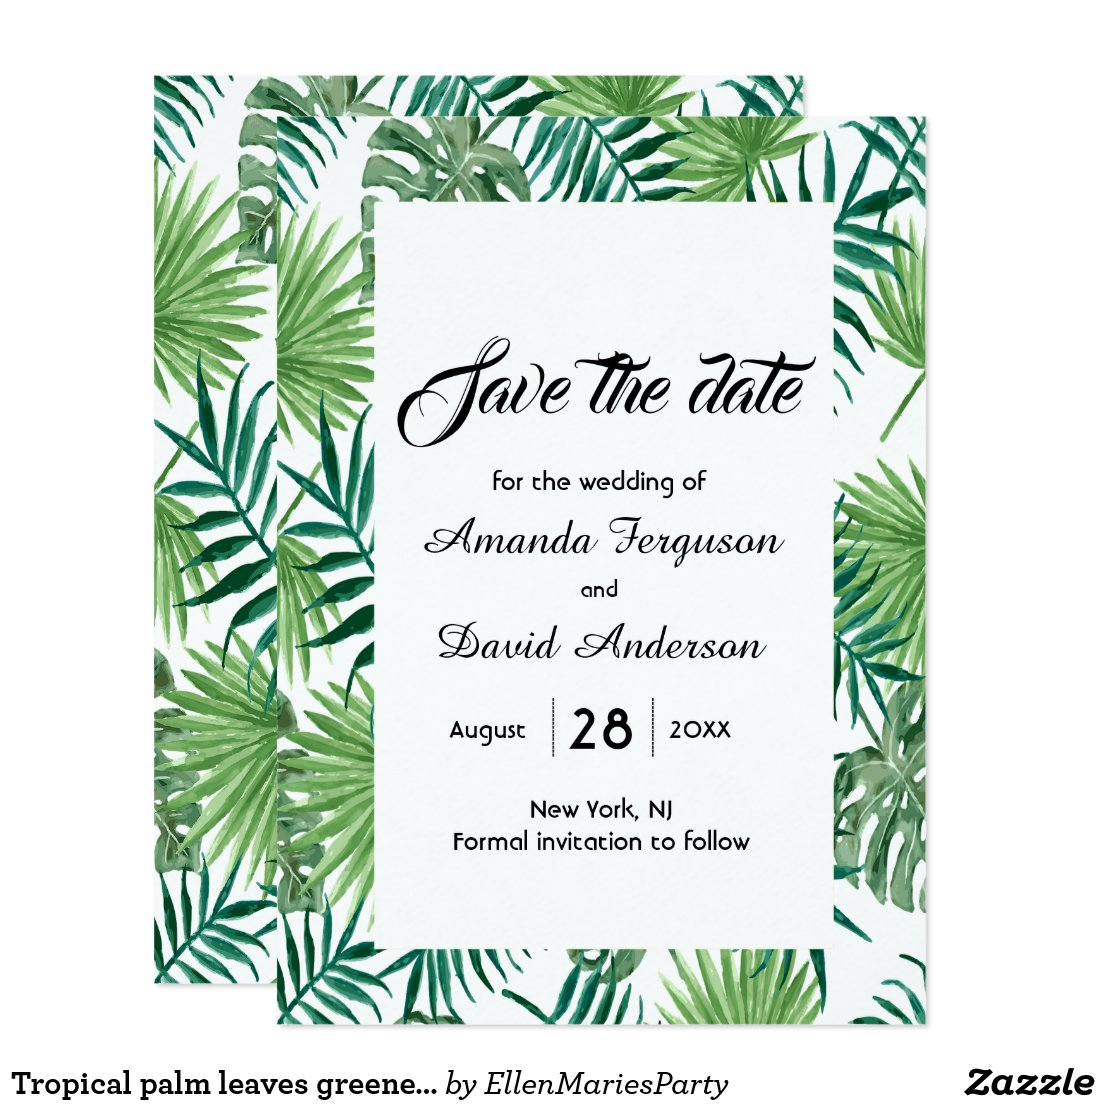 Palm leaves greenery save the date card